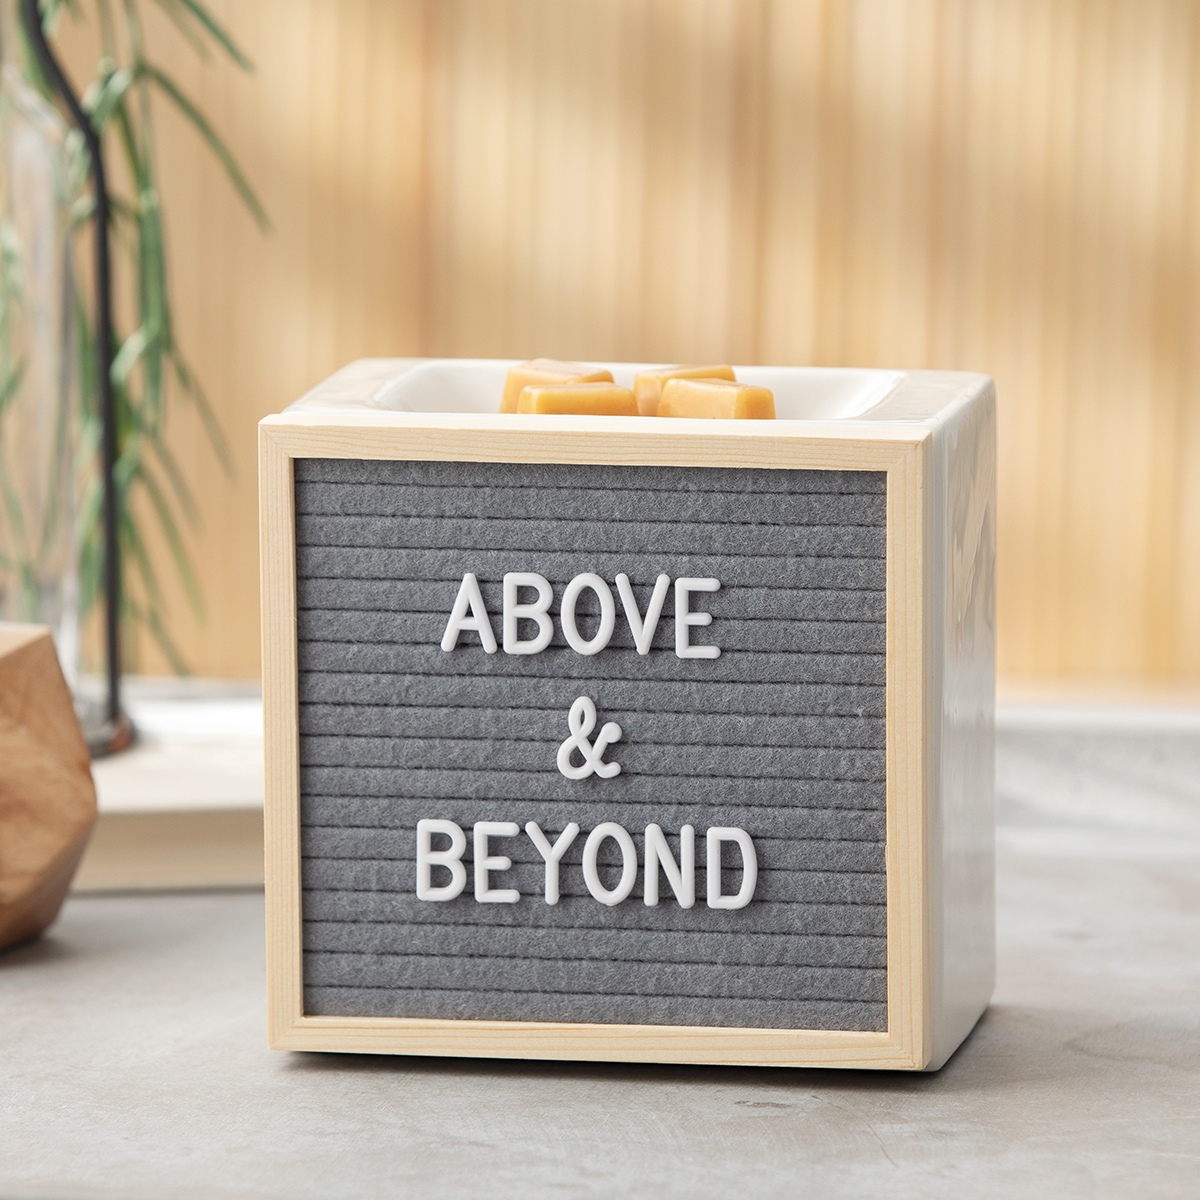 Scentsy Letterboard Warmer | Letterboard Scentsy Warmer | Incandescent.Scentsy.us